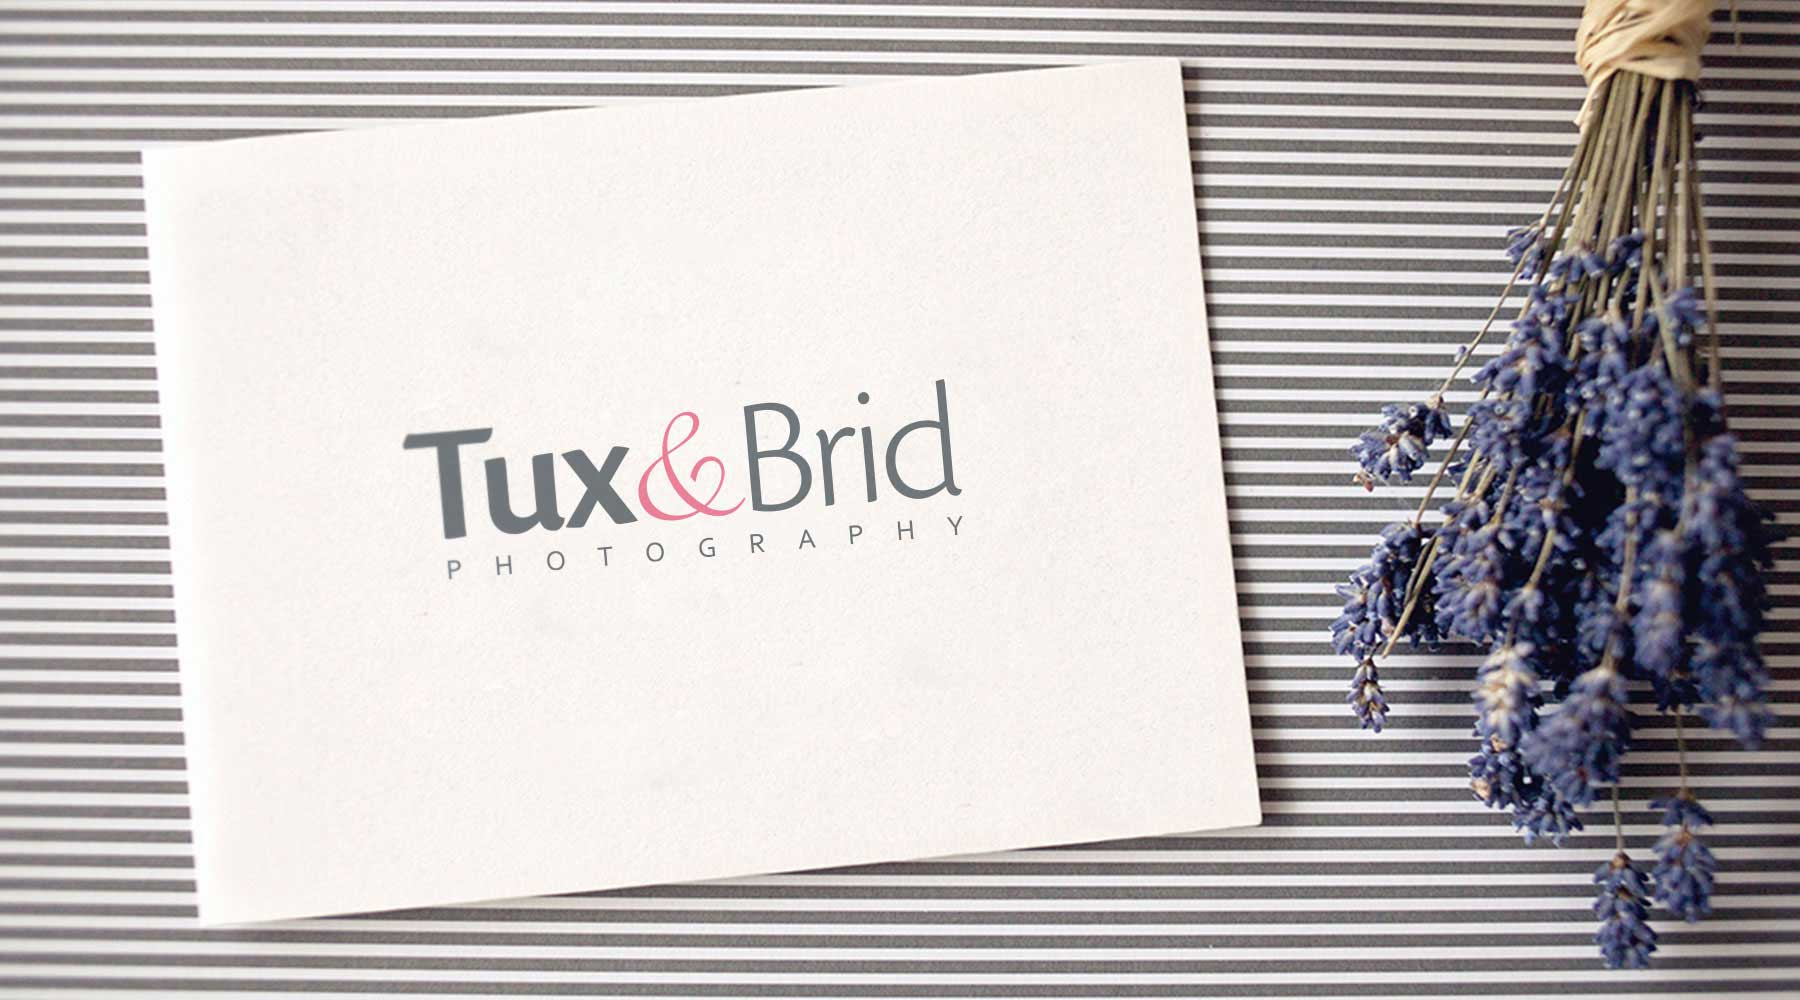 TuxandBrid Wedding Photograpy